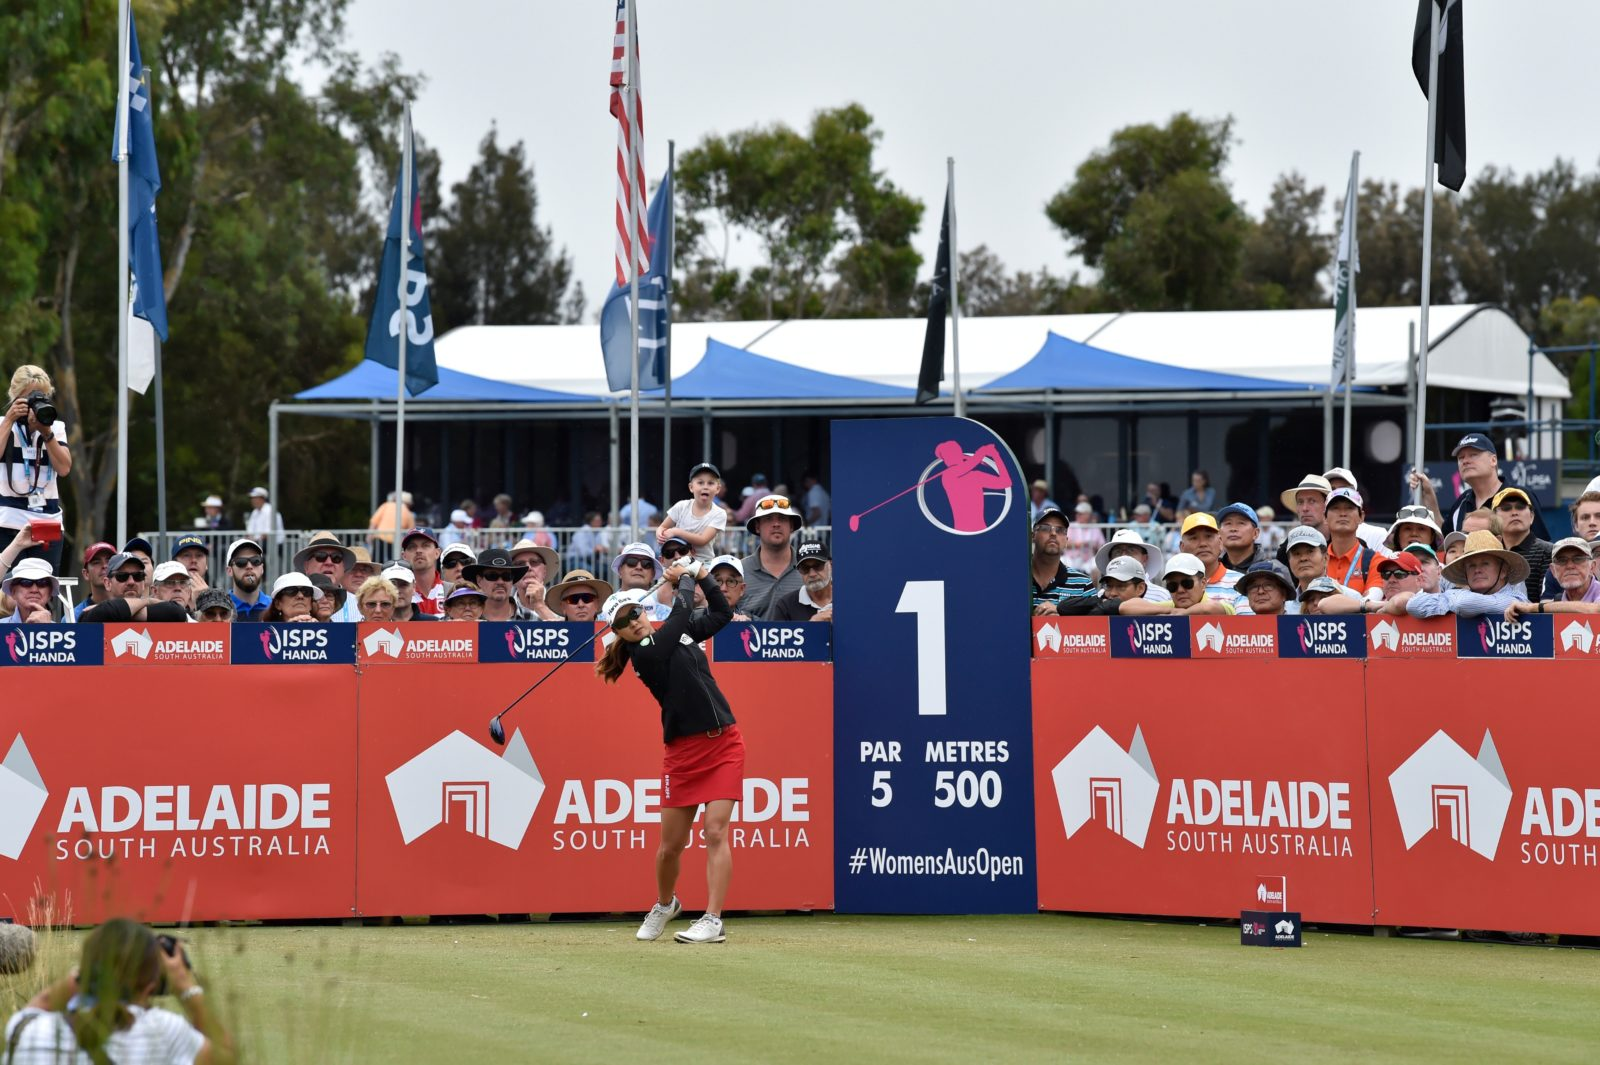 Crowds gather at the first tee